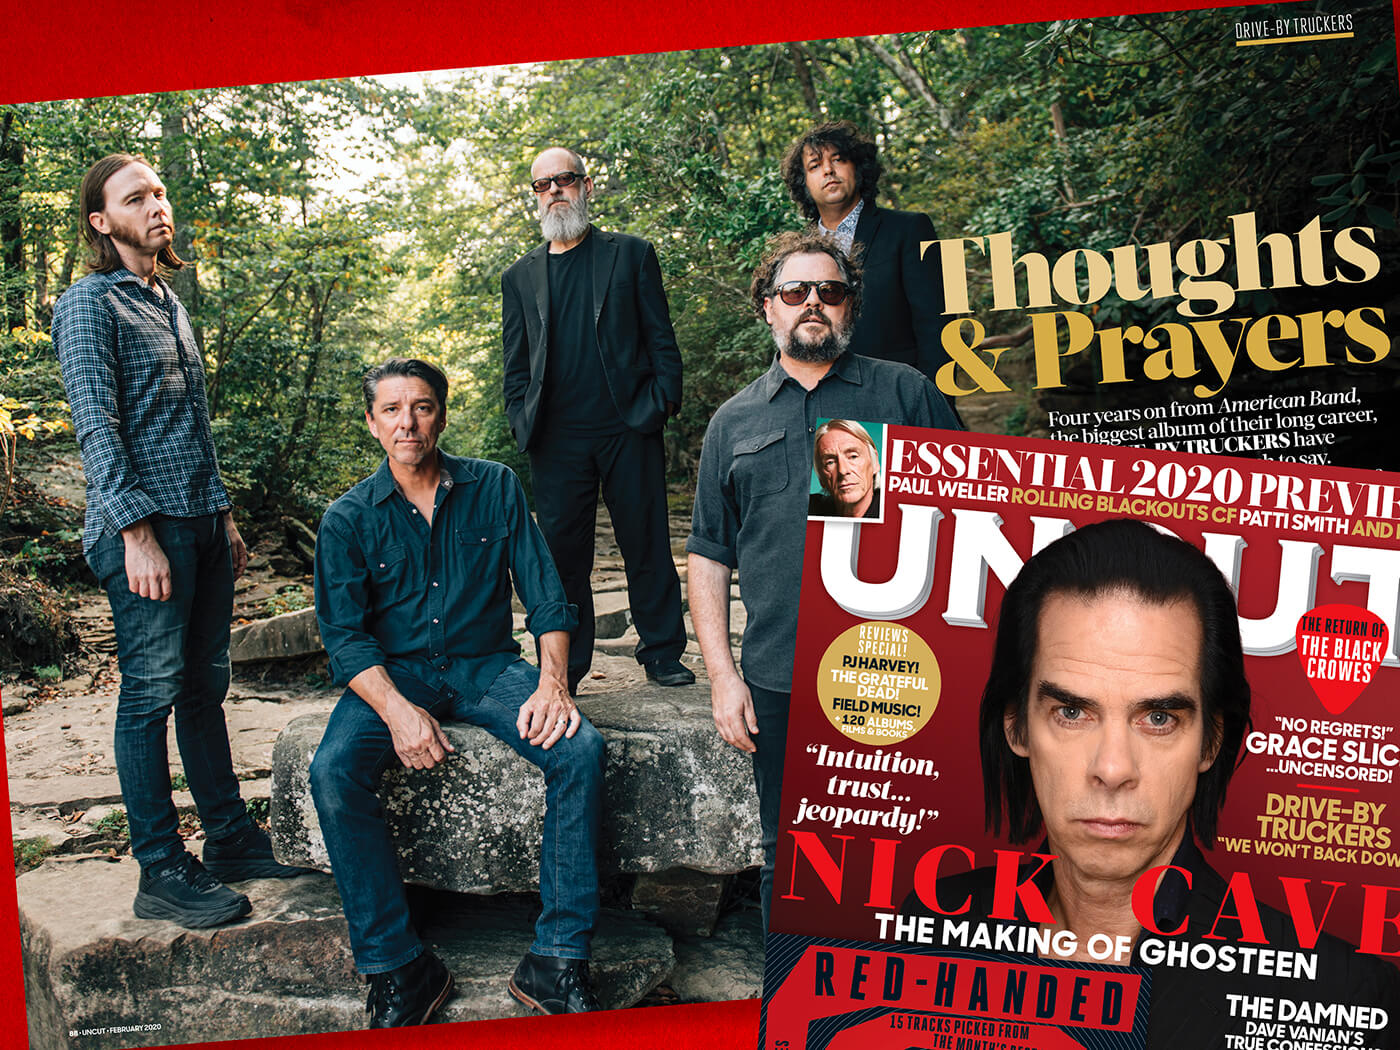 """Drive-By Truckers: """"Now was not the time to retreat"""" - UNCUT"""